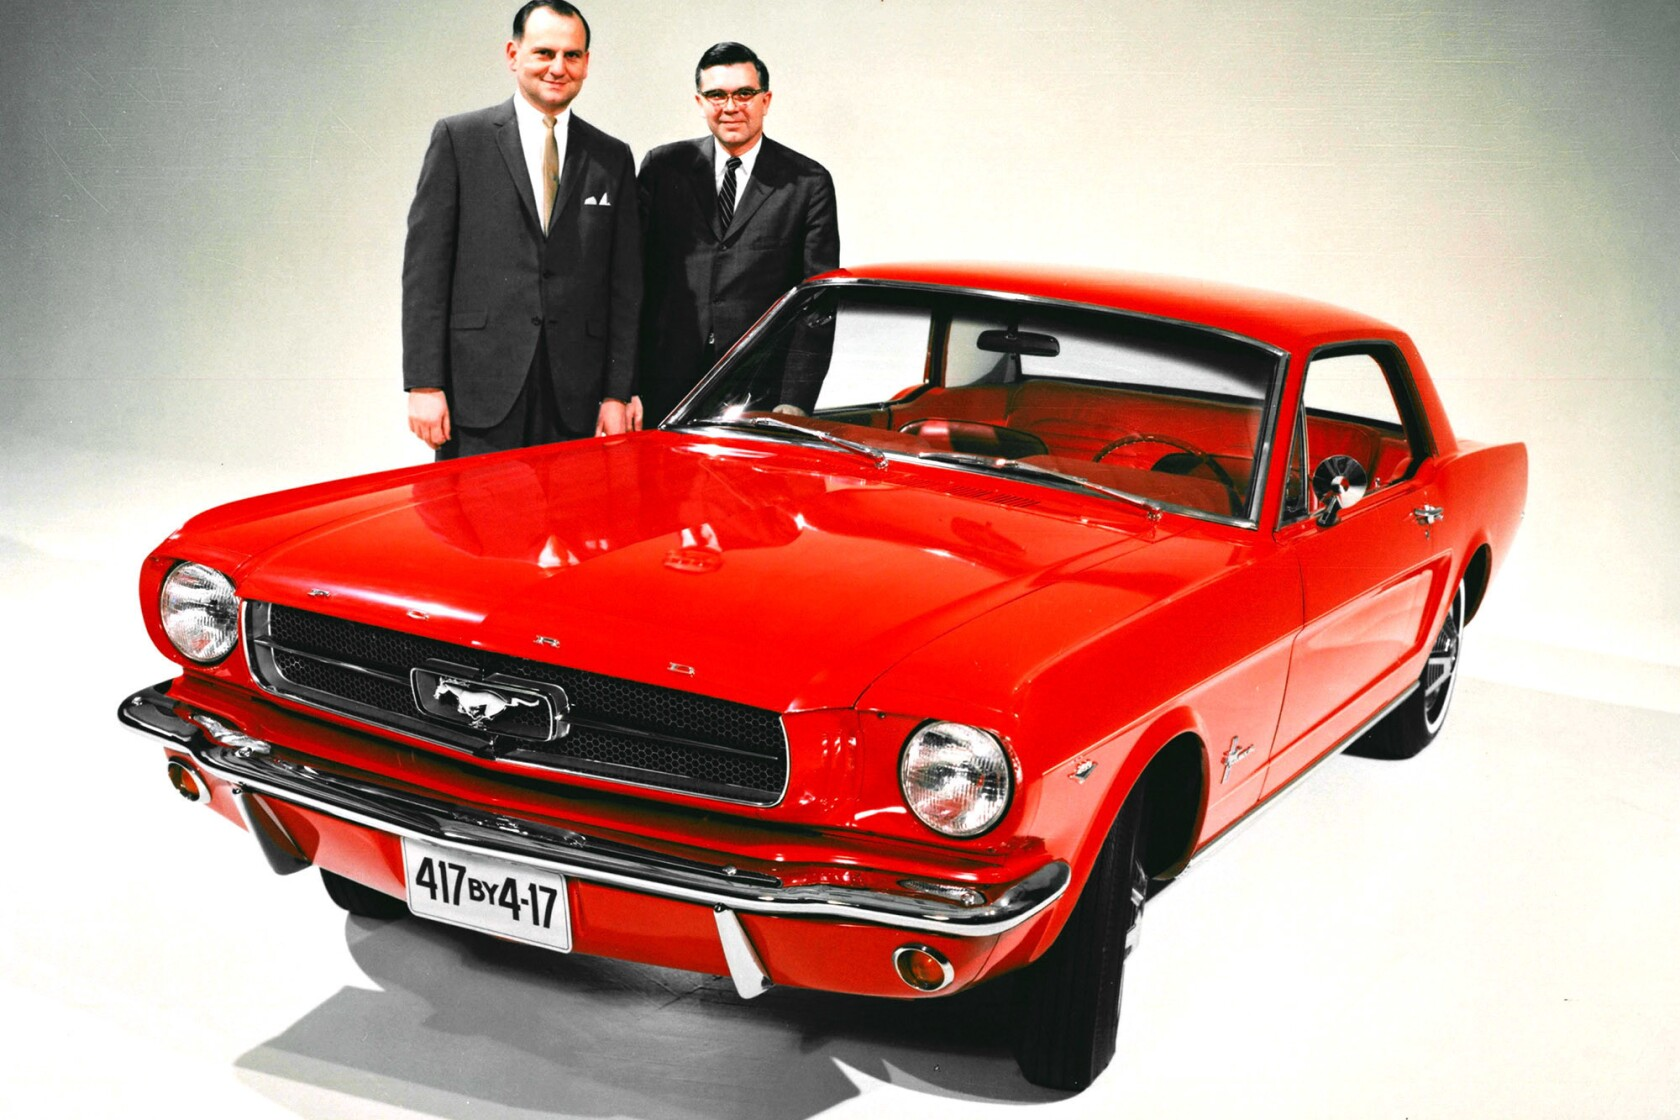 Lee iacocca father of the ford mustang who later rescued chrysler